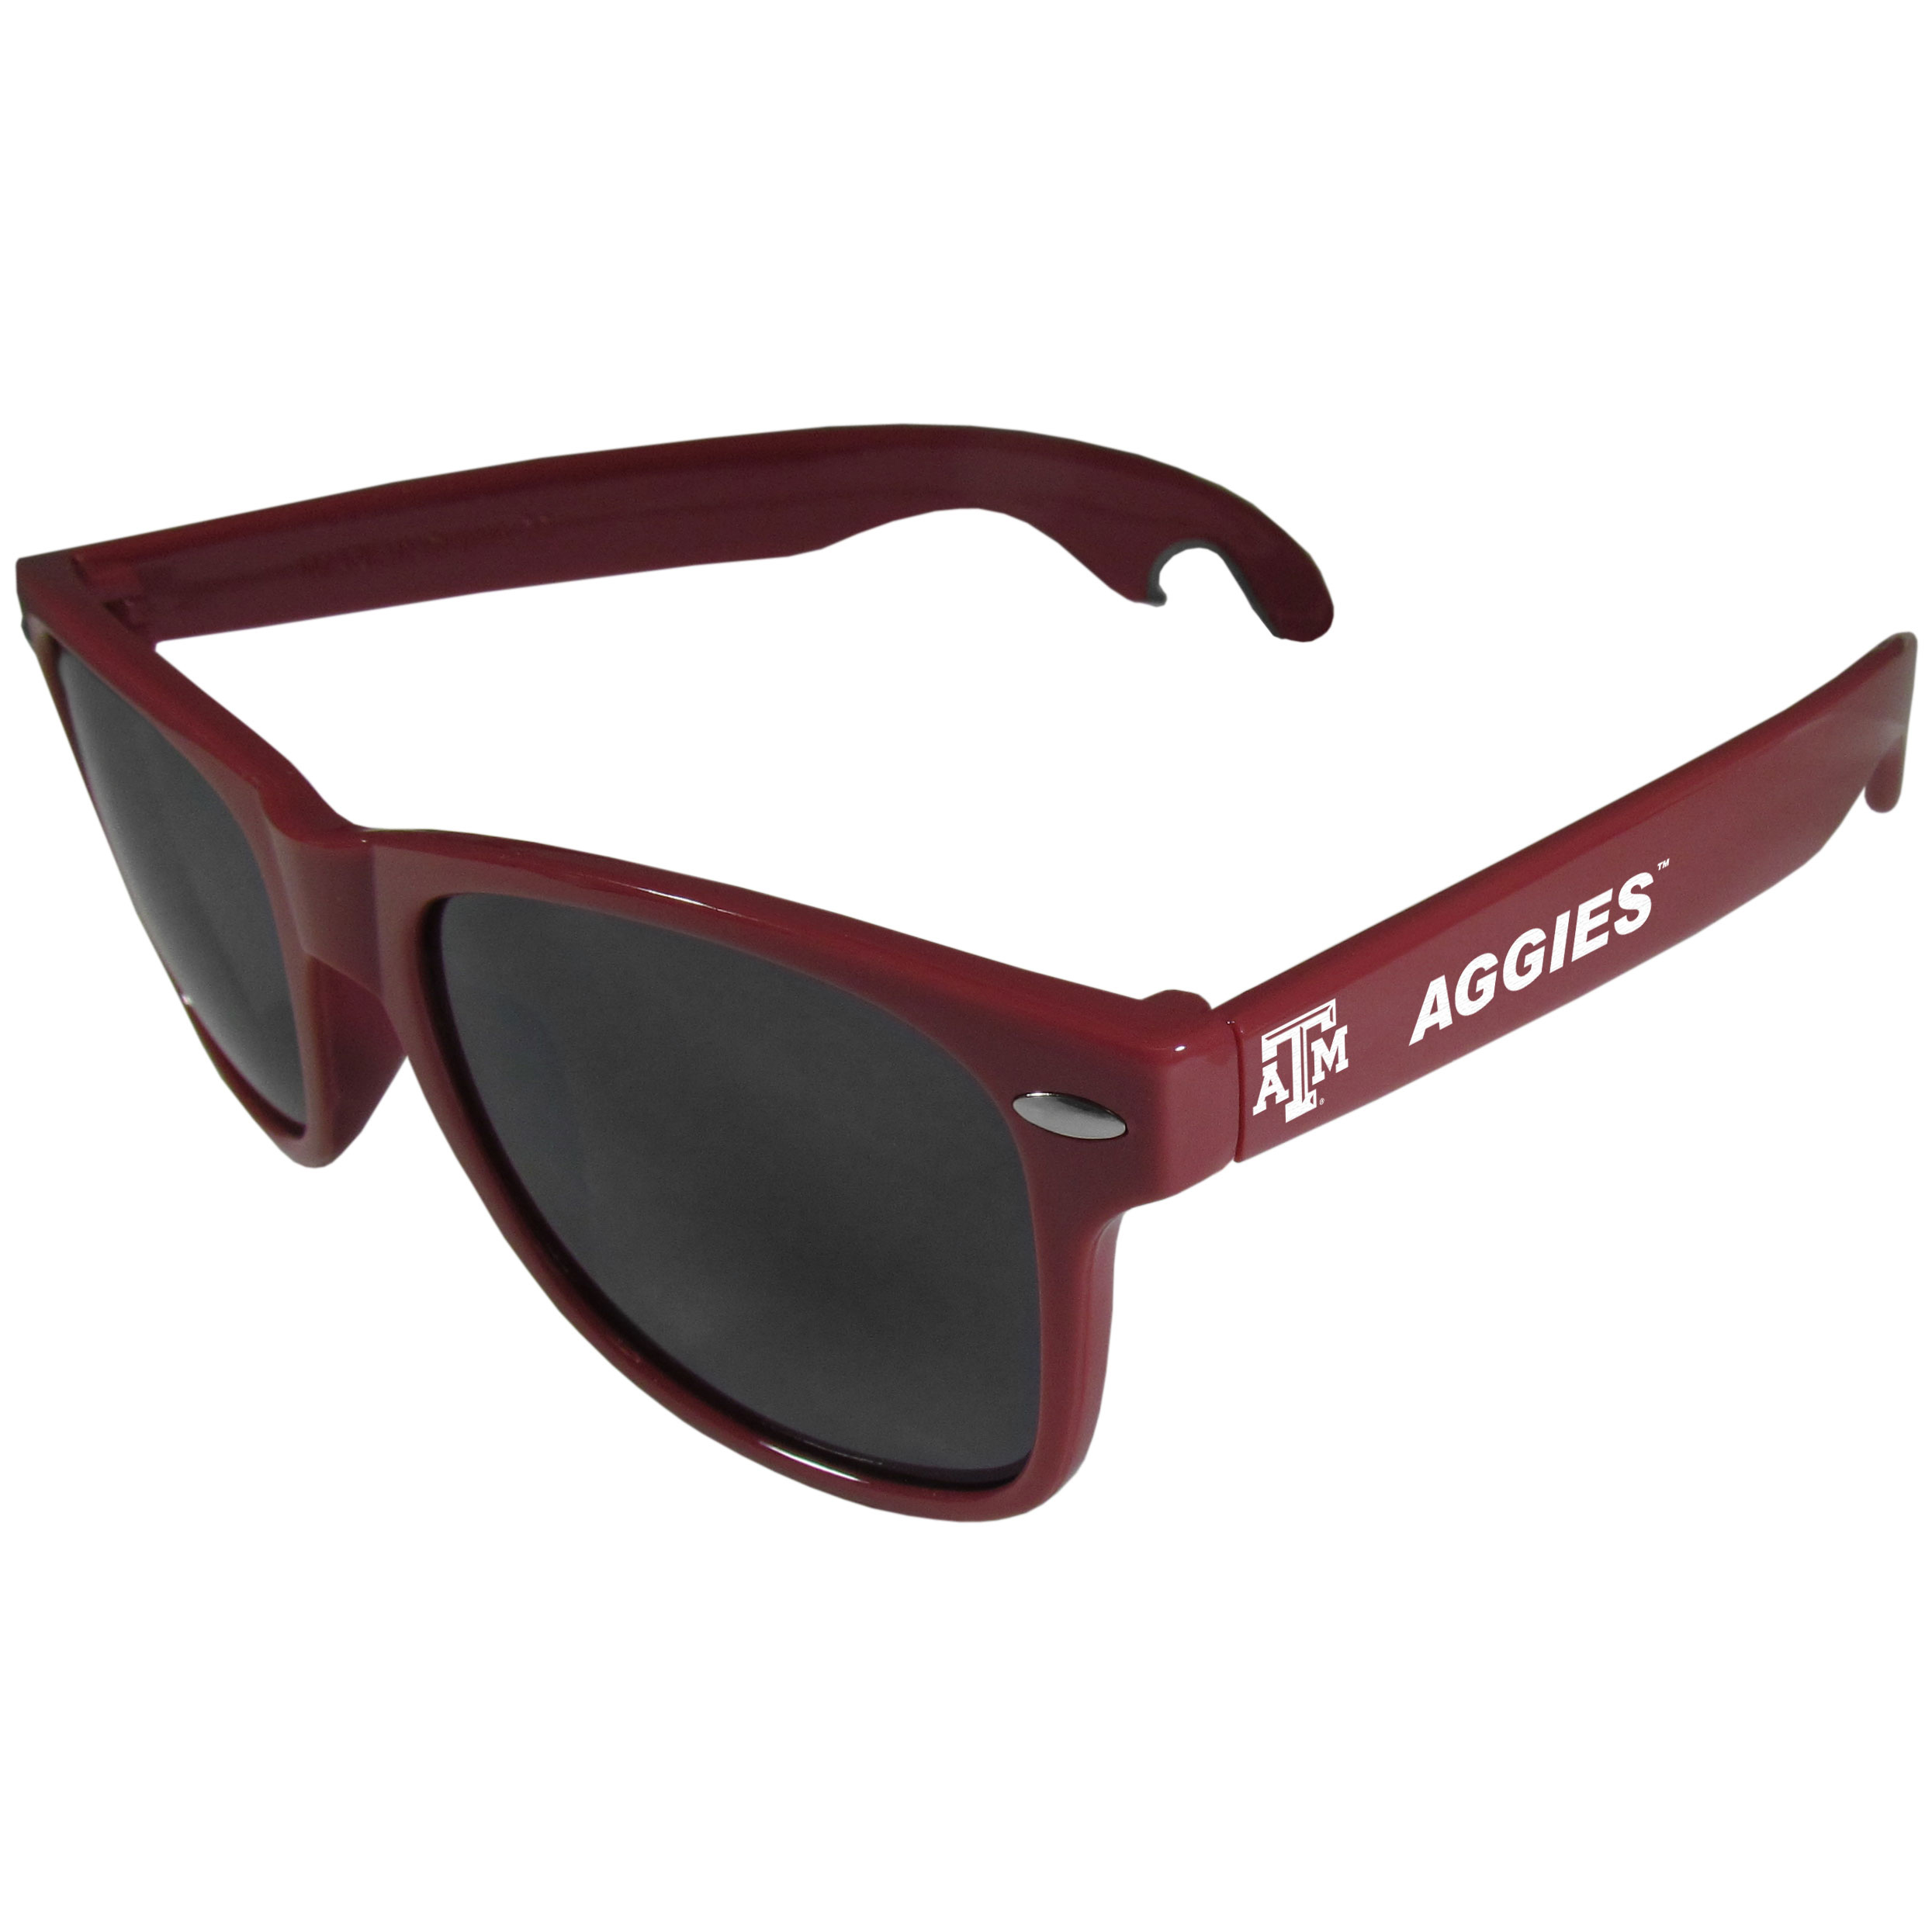 Texas A and M Aggies Beachfarer Bottle Opener Sunglasses, Maroon - Seriously, these sunglasses open bottles! Keep the party going with these amazing Texas A & M Aggies bottle opener sunglasses. The stylish retro frames feature team designs on the arms and functional bottle openers on the end of the arms. Whether you are at the beach or having a backyard BBQ on game day, these shades will keep your eyes protected with 100% UVA/UVB protection and keep you hydrated with the handy bottle opener arms.